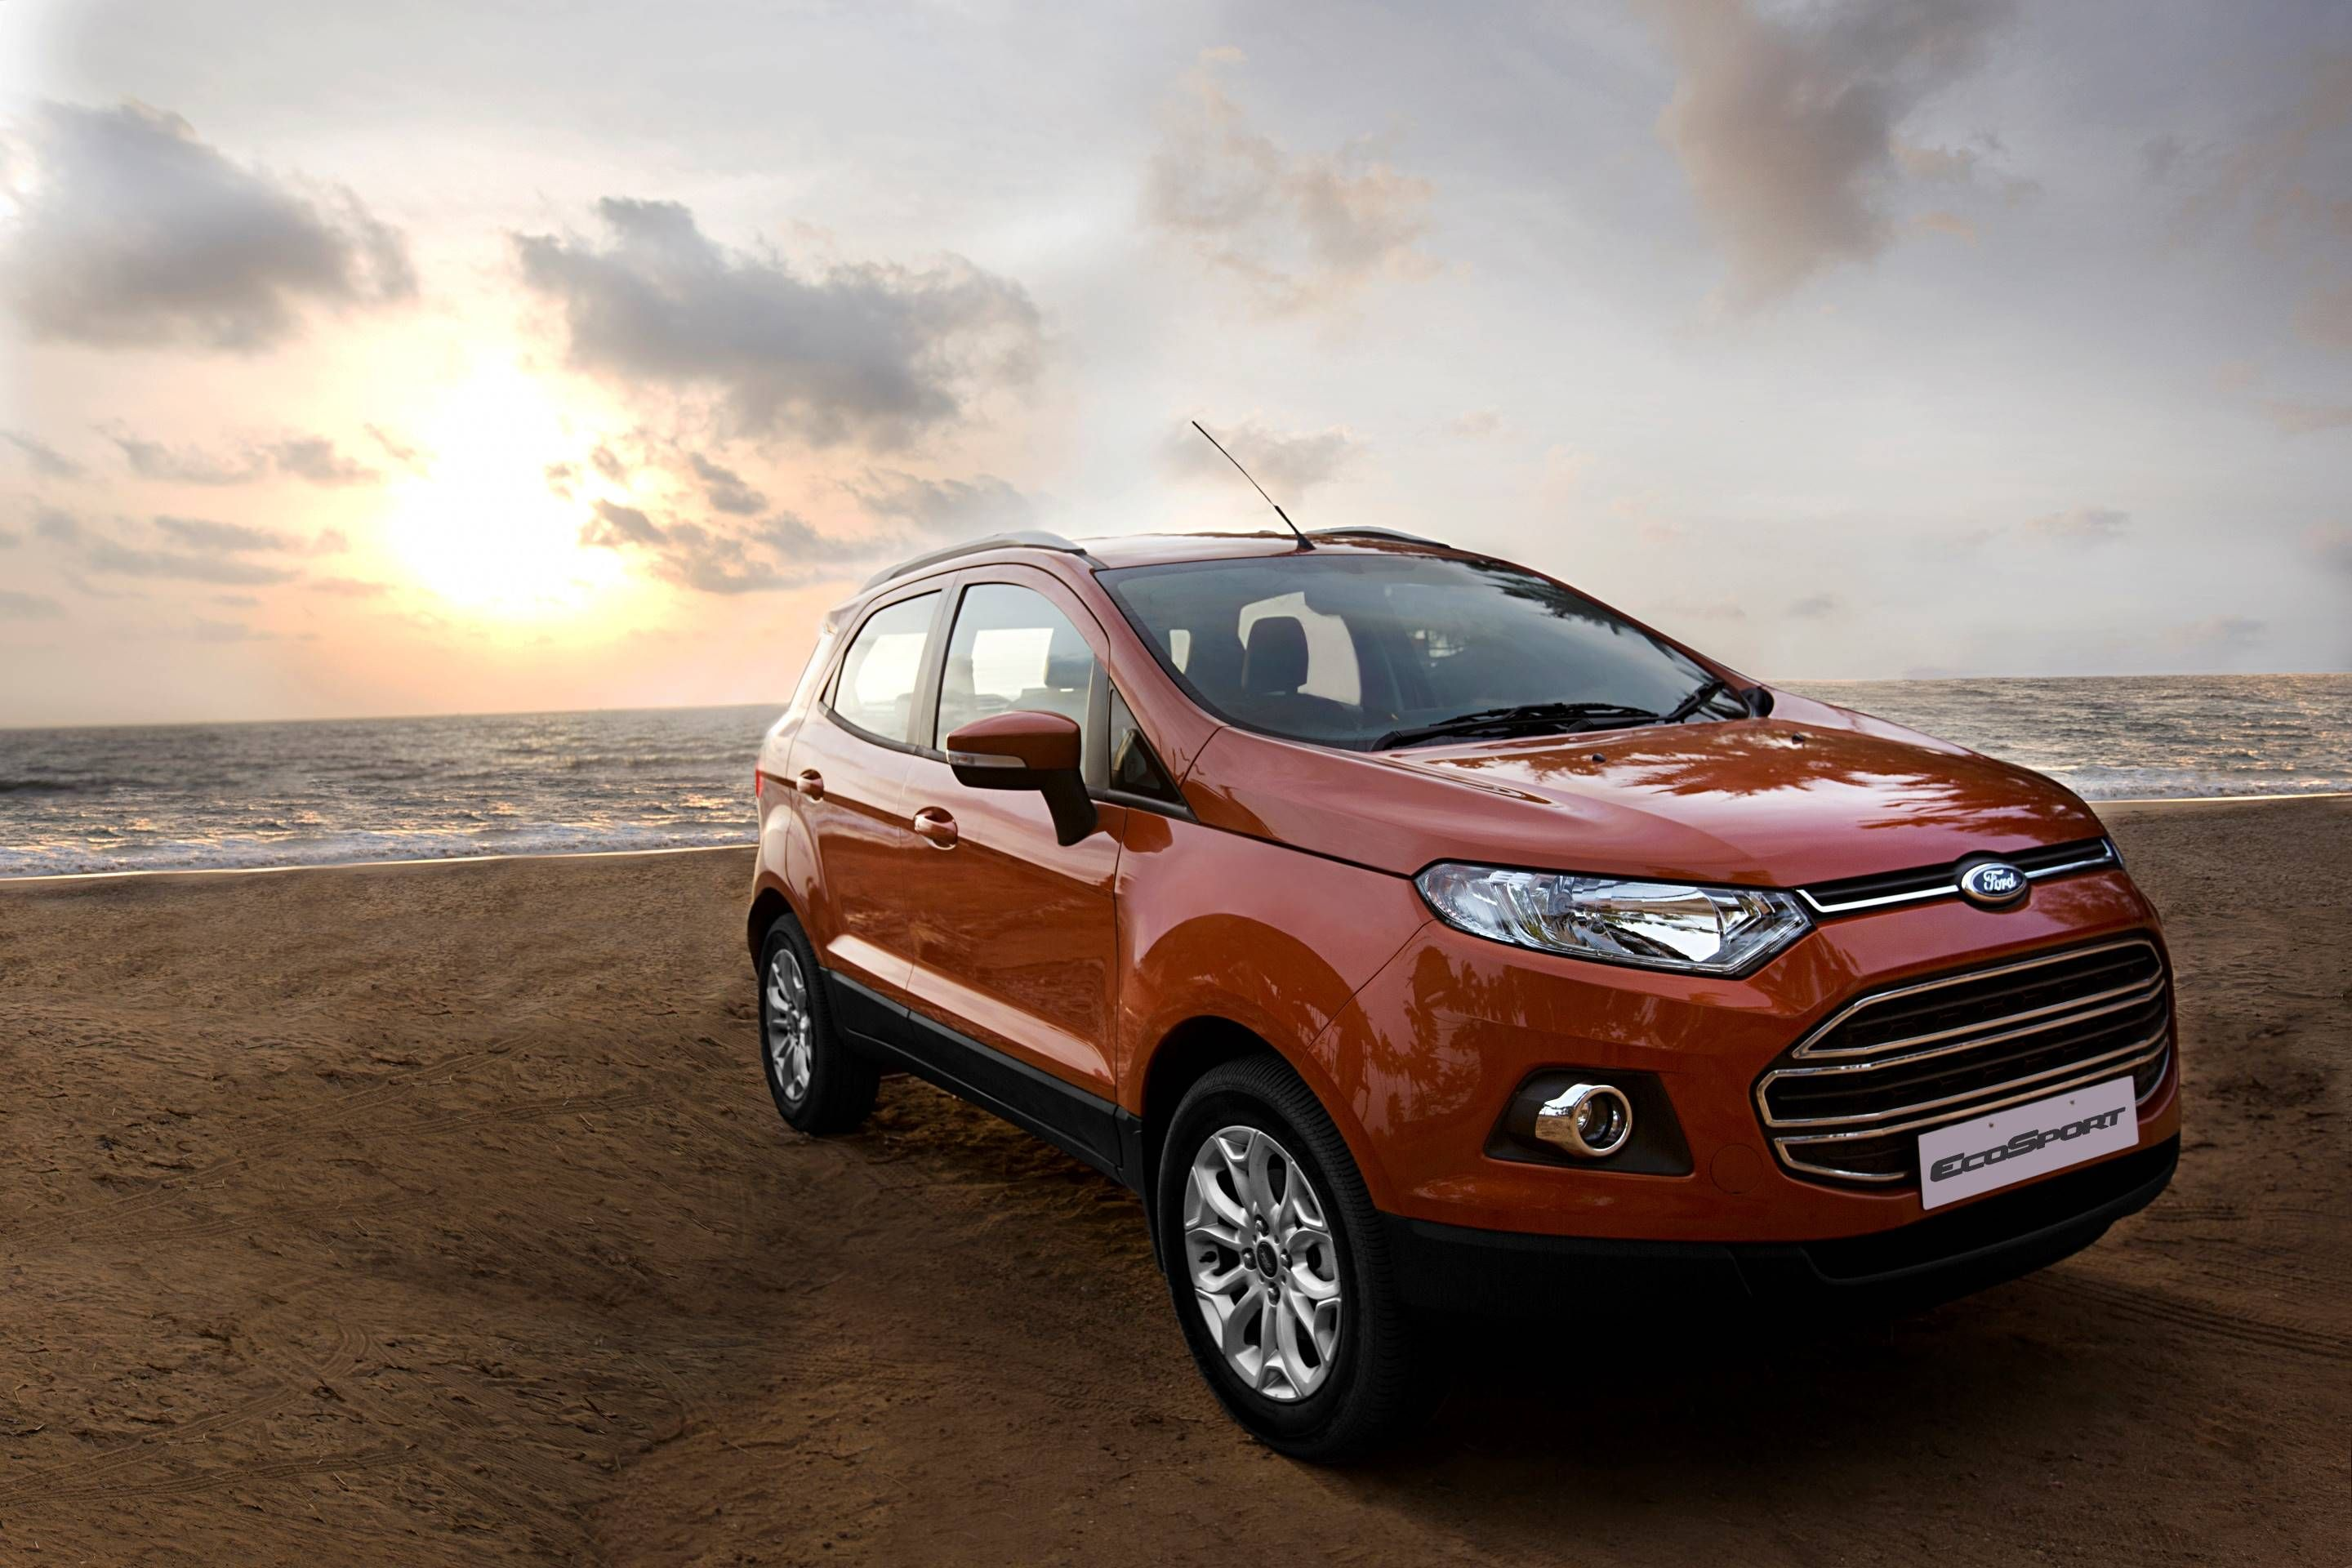 Ford Ecosport Desktop Background Ford Ecosport Compact Suv Ford